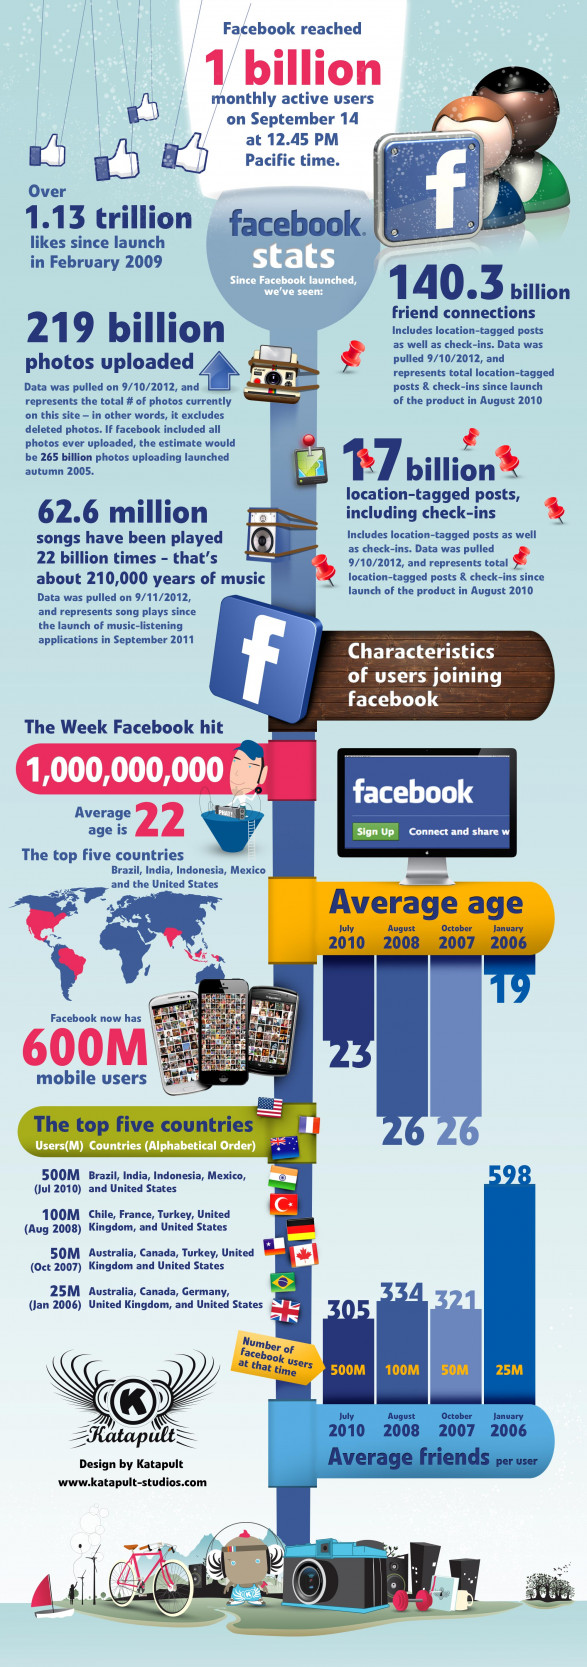 Facebook reaches 1 billion monthly active users